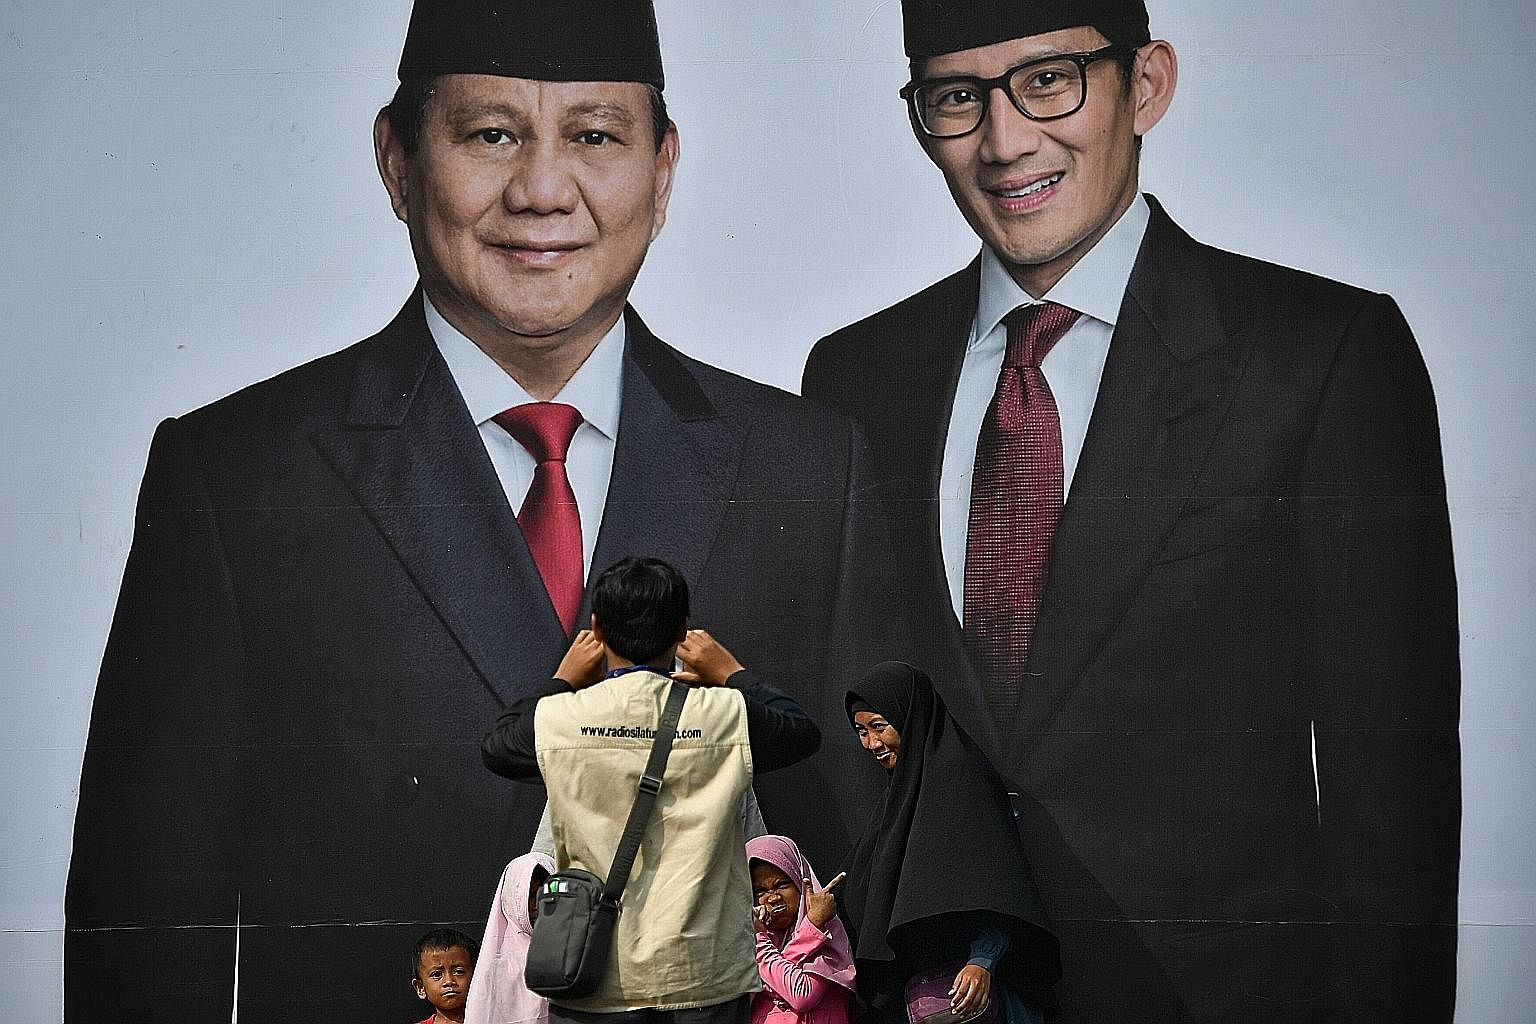 Supporters of presidential hopeful Prabowo Subianto taking pictures in front of a poster of him (left) and his running mate Sandiaga Uno at the Gelora Bung Karno Stadium yesterday, a day ahead of his mega rally there.